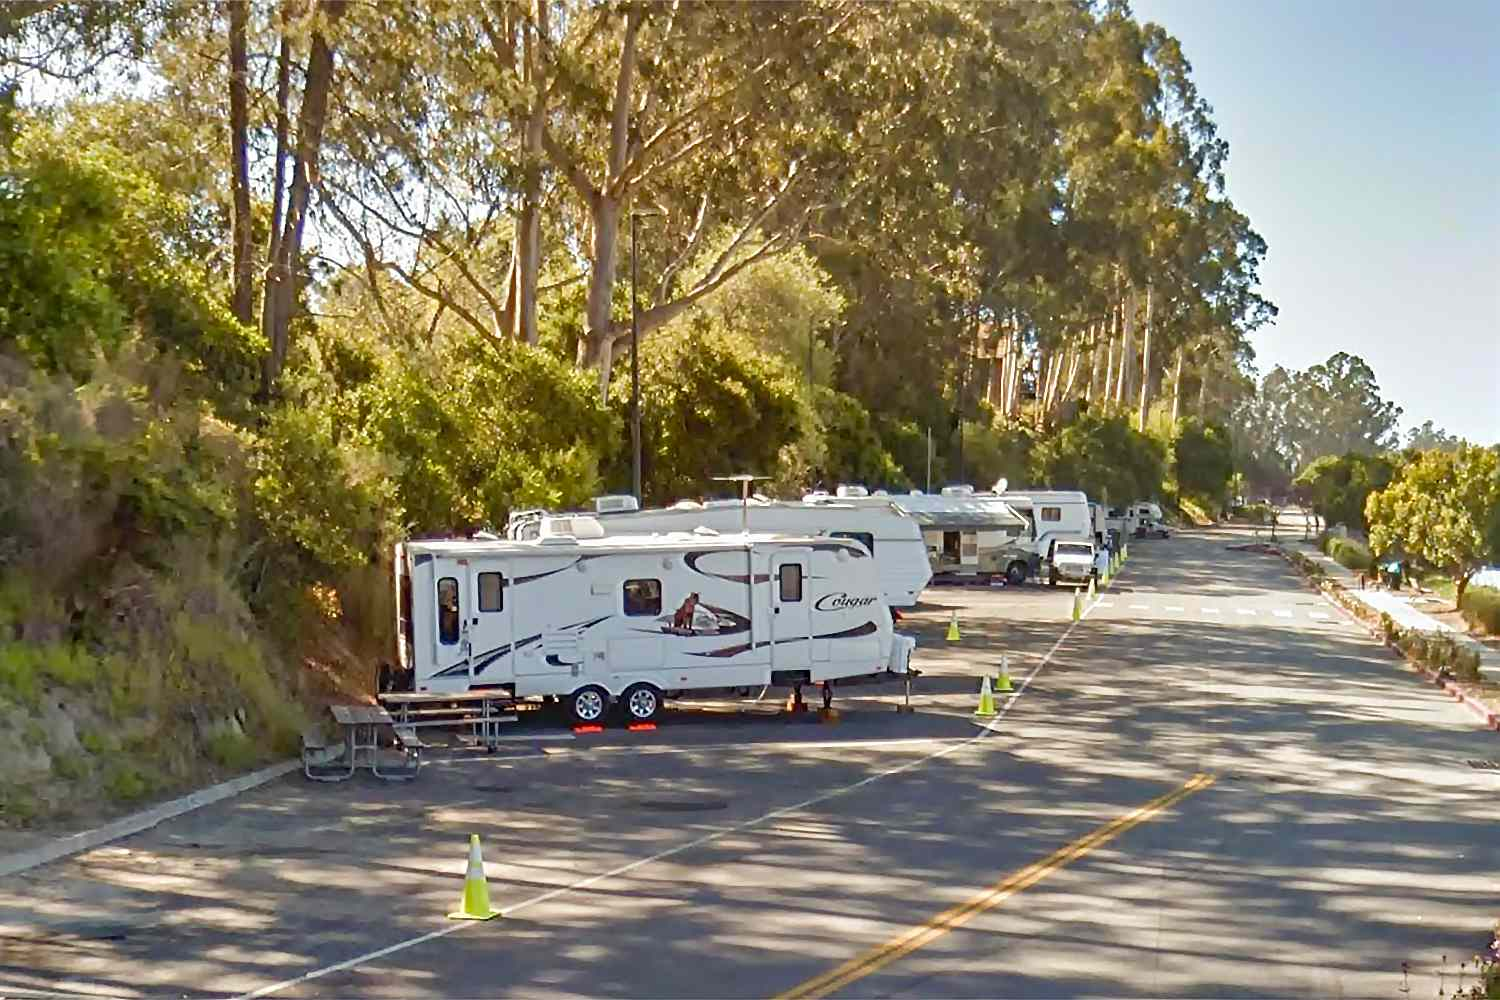 santa cruz camping - places you will love to stay